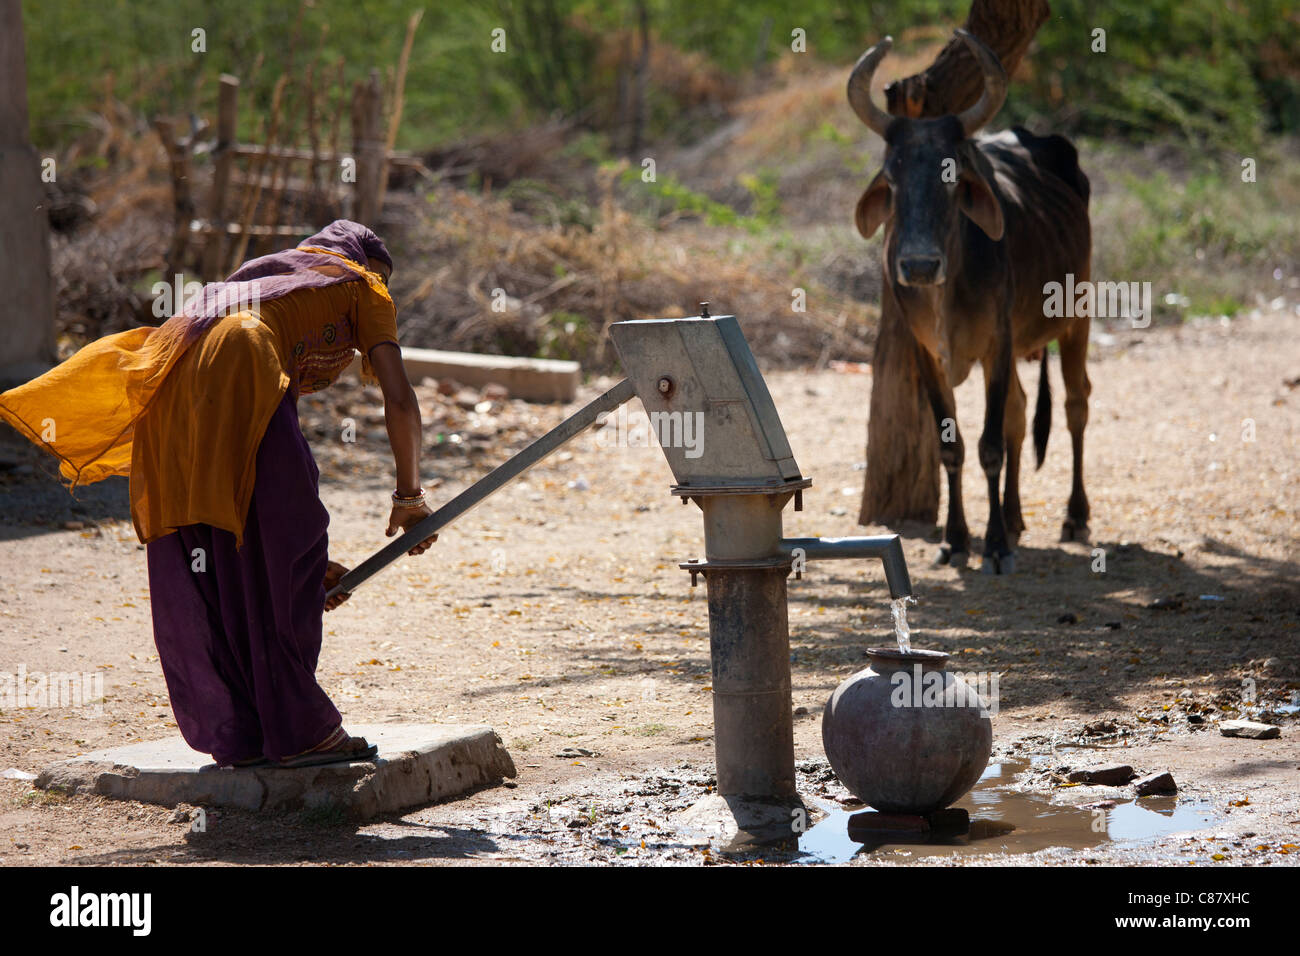 Indian woman pumping water from a well at Jawali village in Rajasthan, Northern India - Stock Image